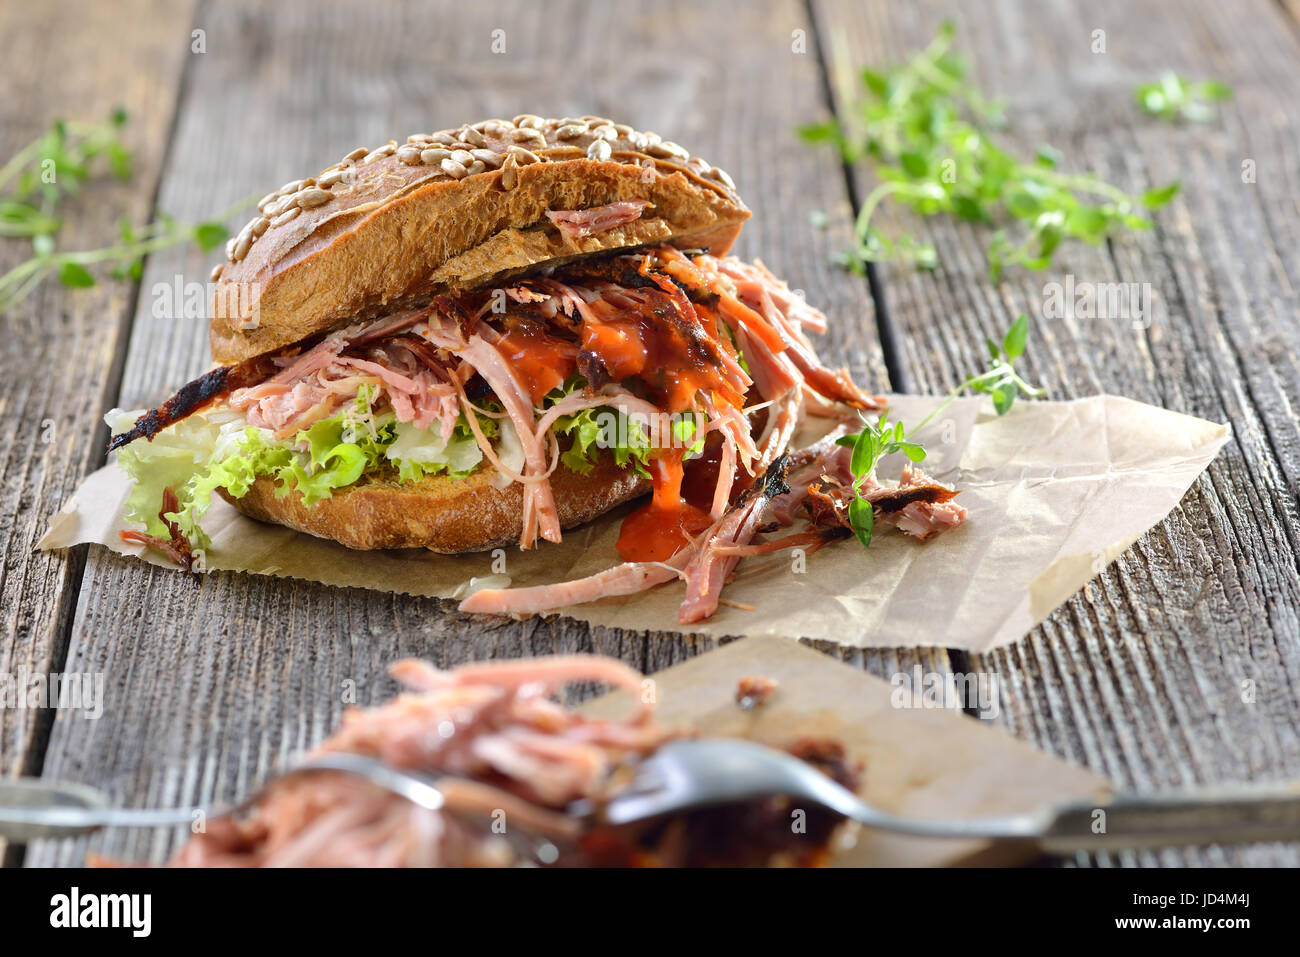 Street food : porc barbecue sandwich complet avec la salade de chou, sauce BBQ servi chaud sur du papier d'emballage Photo Stock